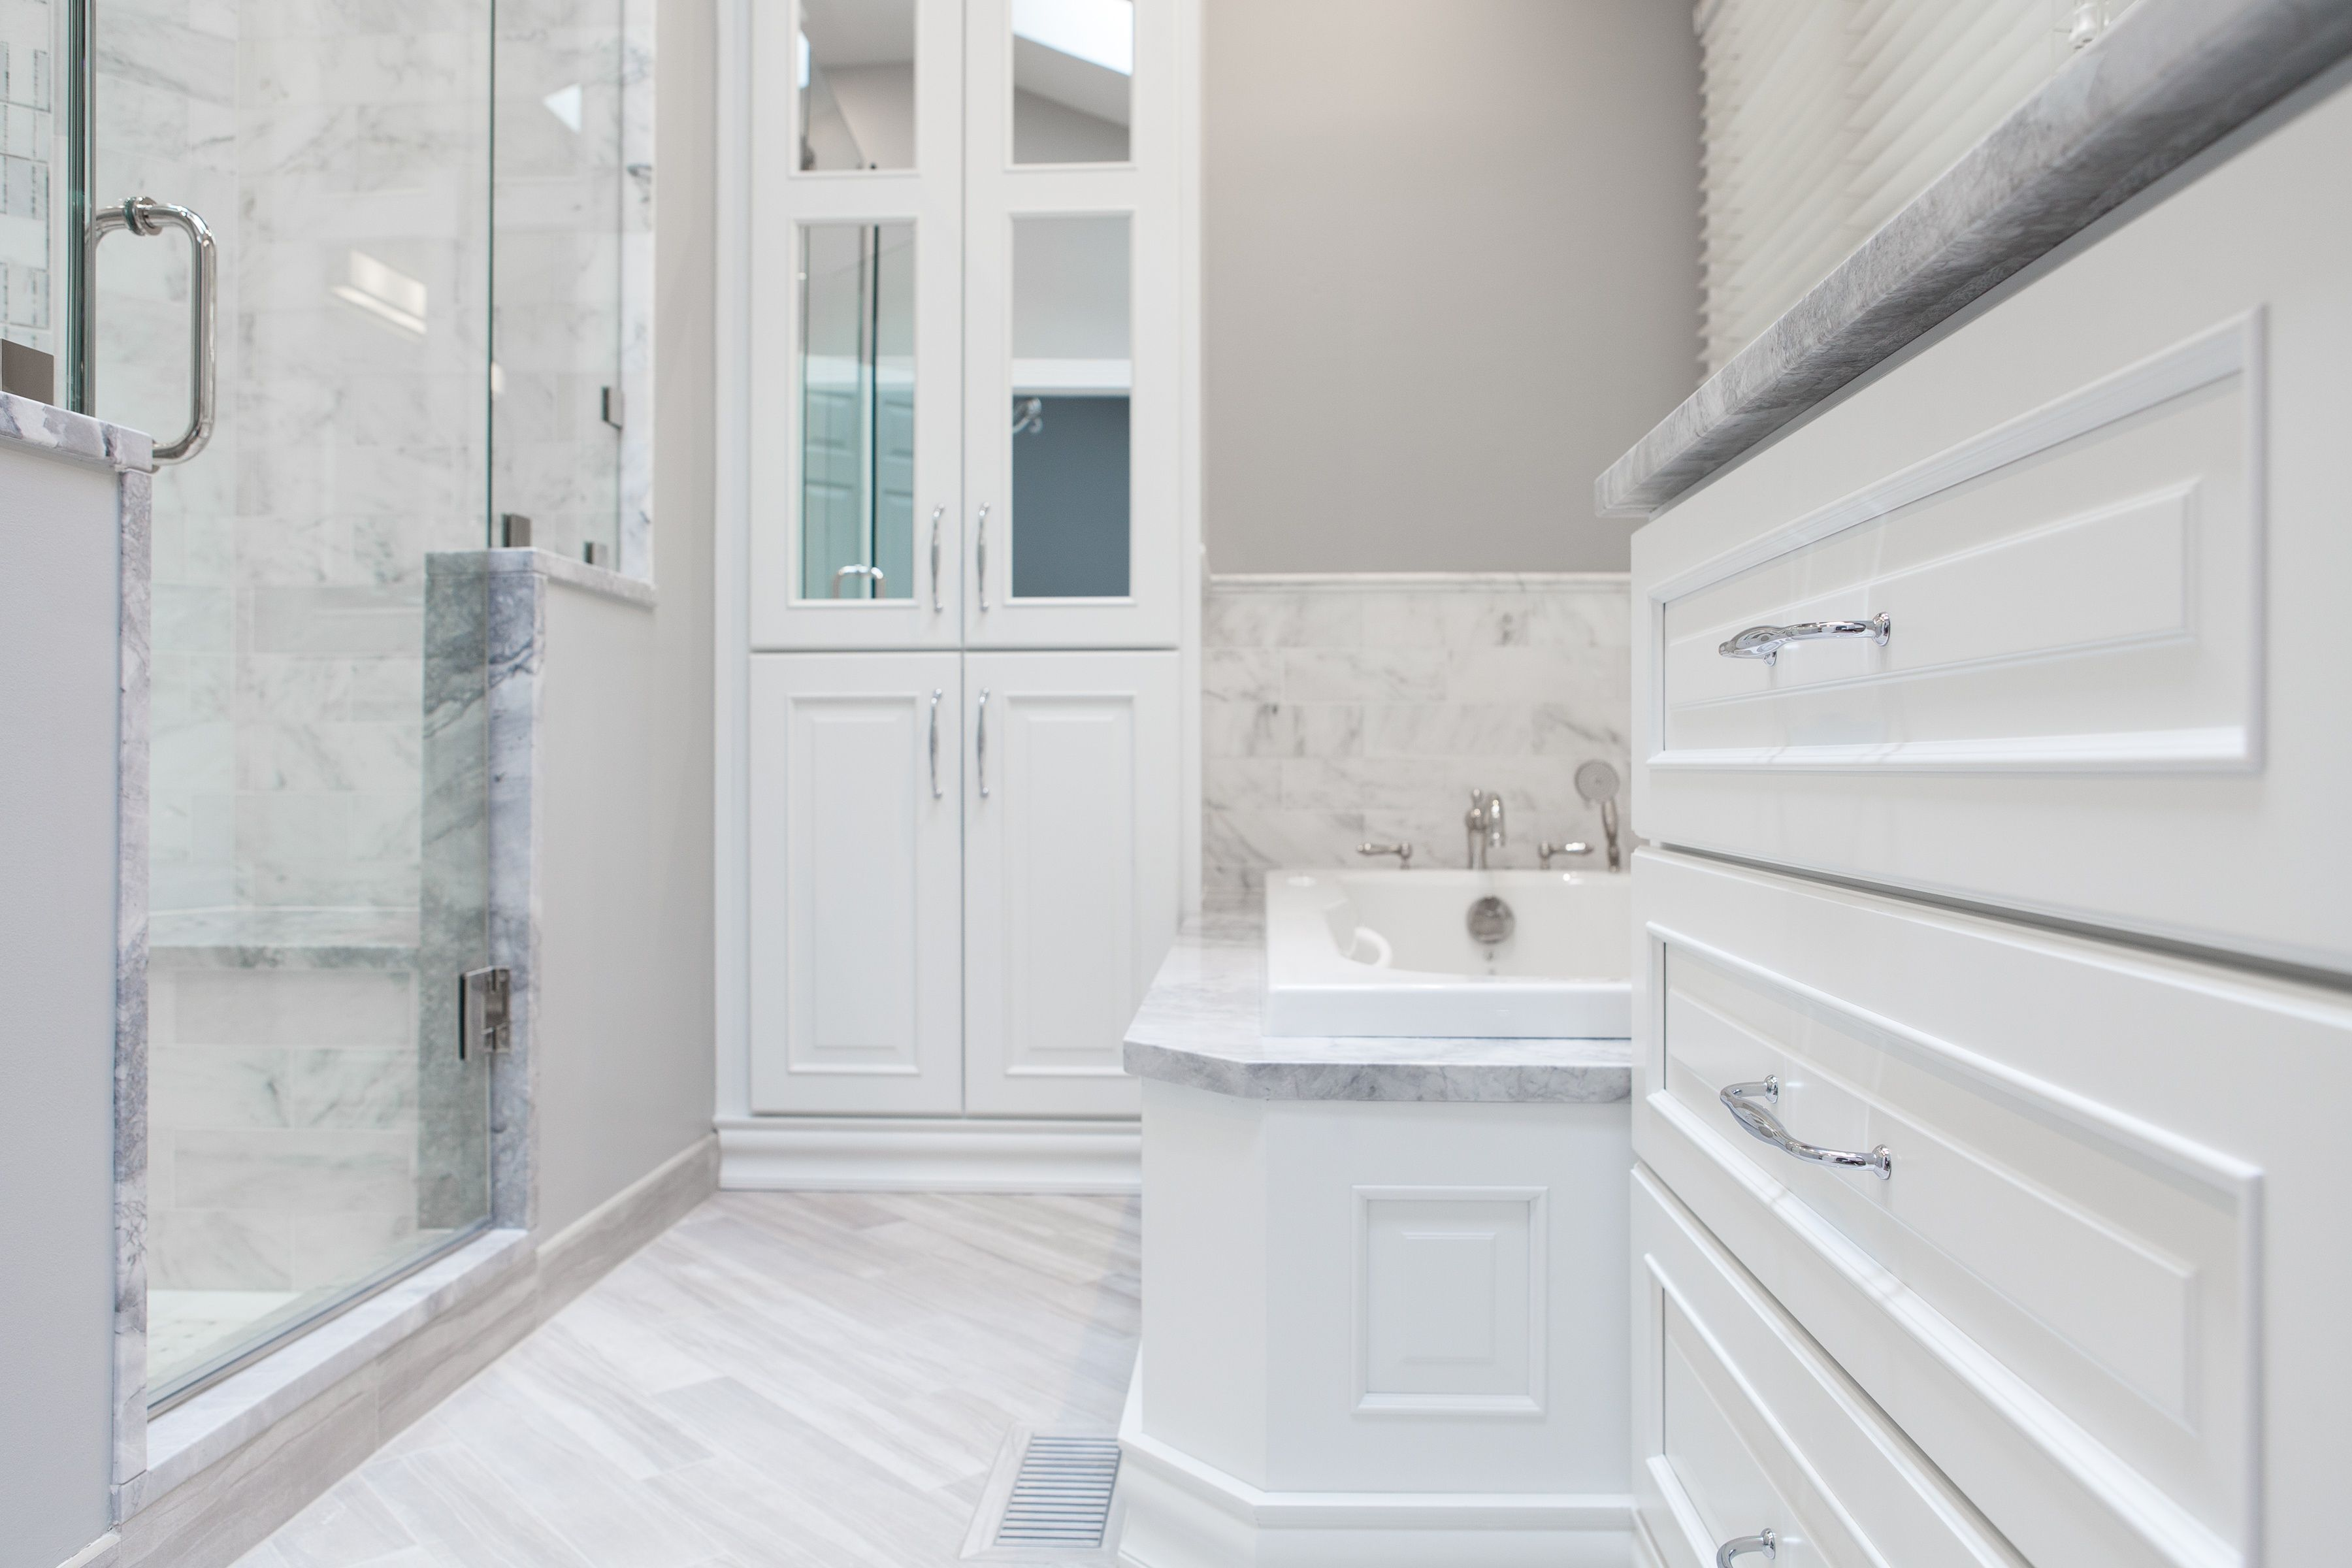 How much does it cost to remodel a bathroom in chicagos